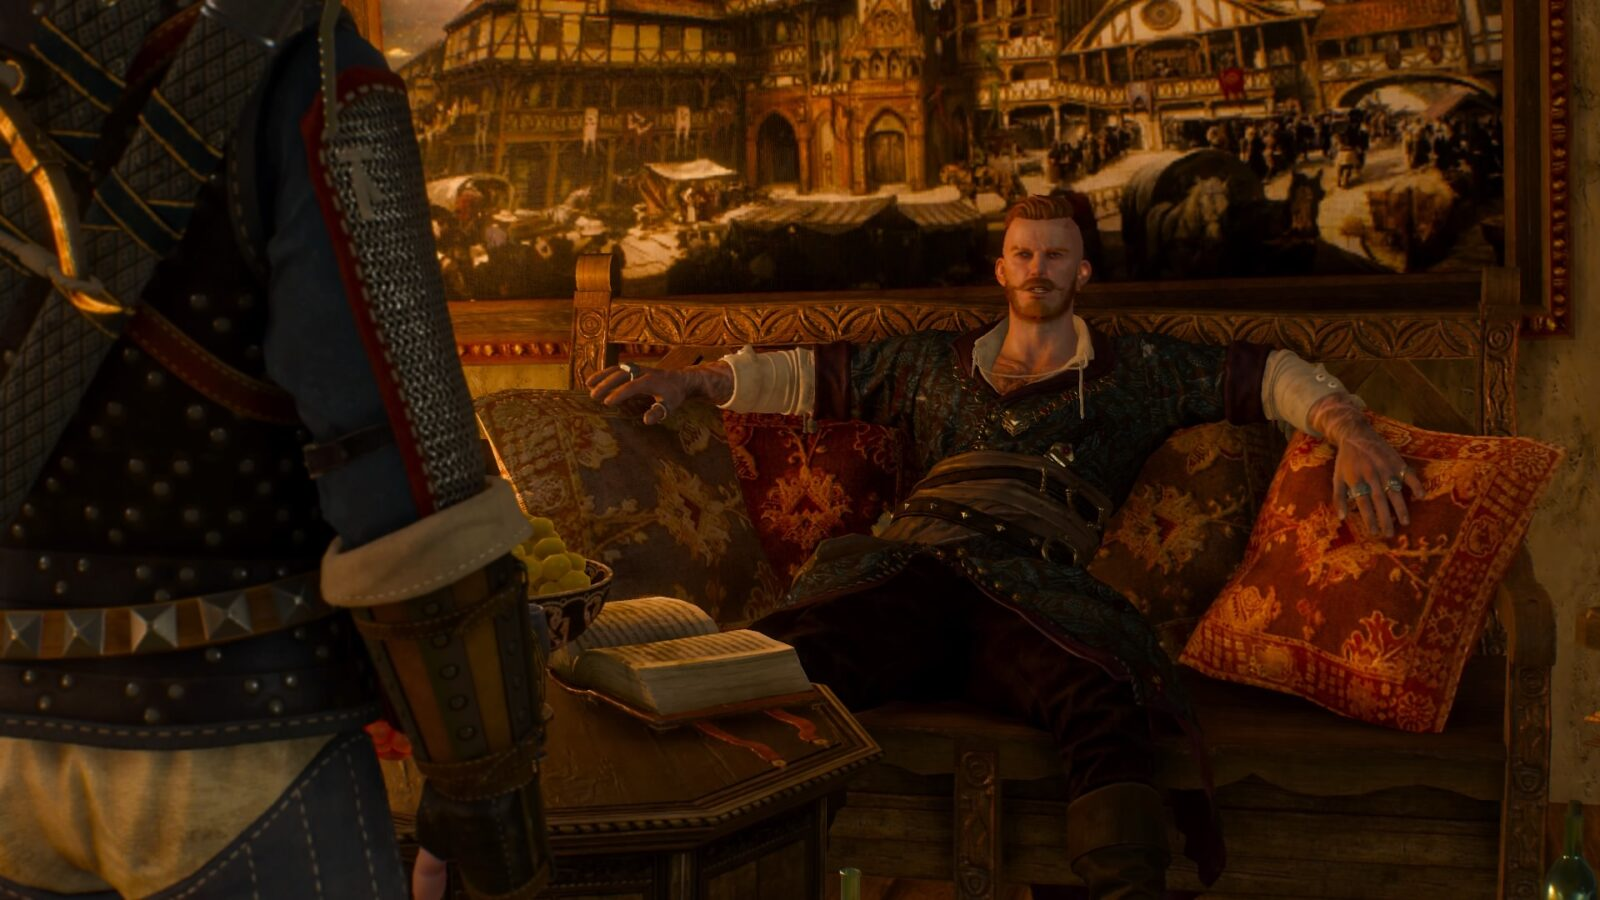 Witcher gets involved in a threesome with 2 medieval ladies - 5 3